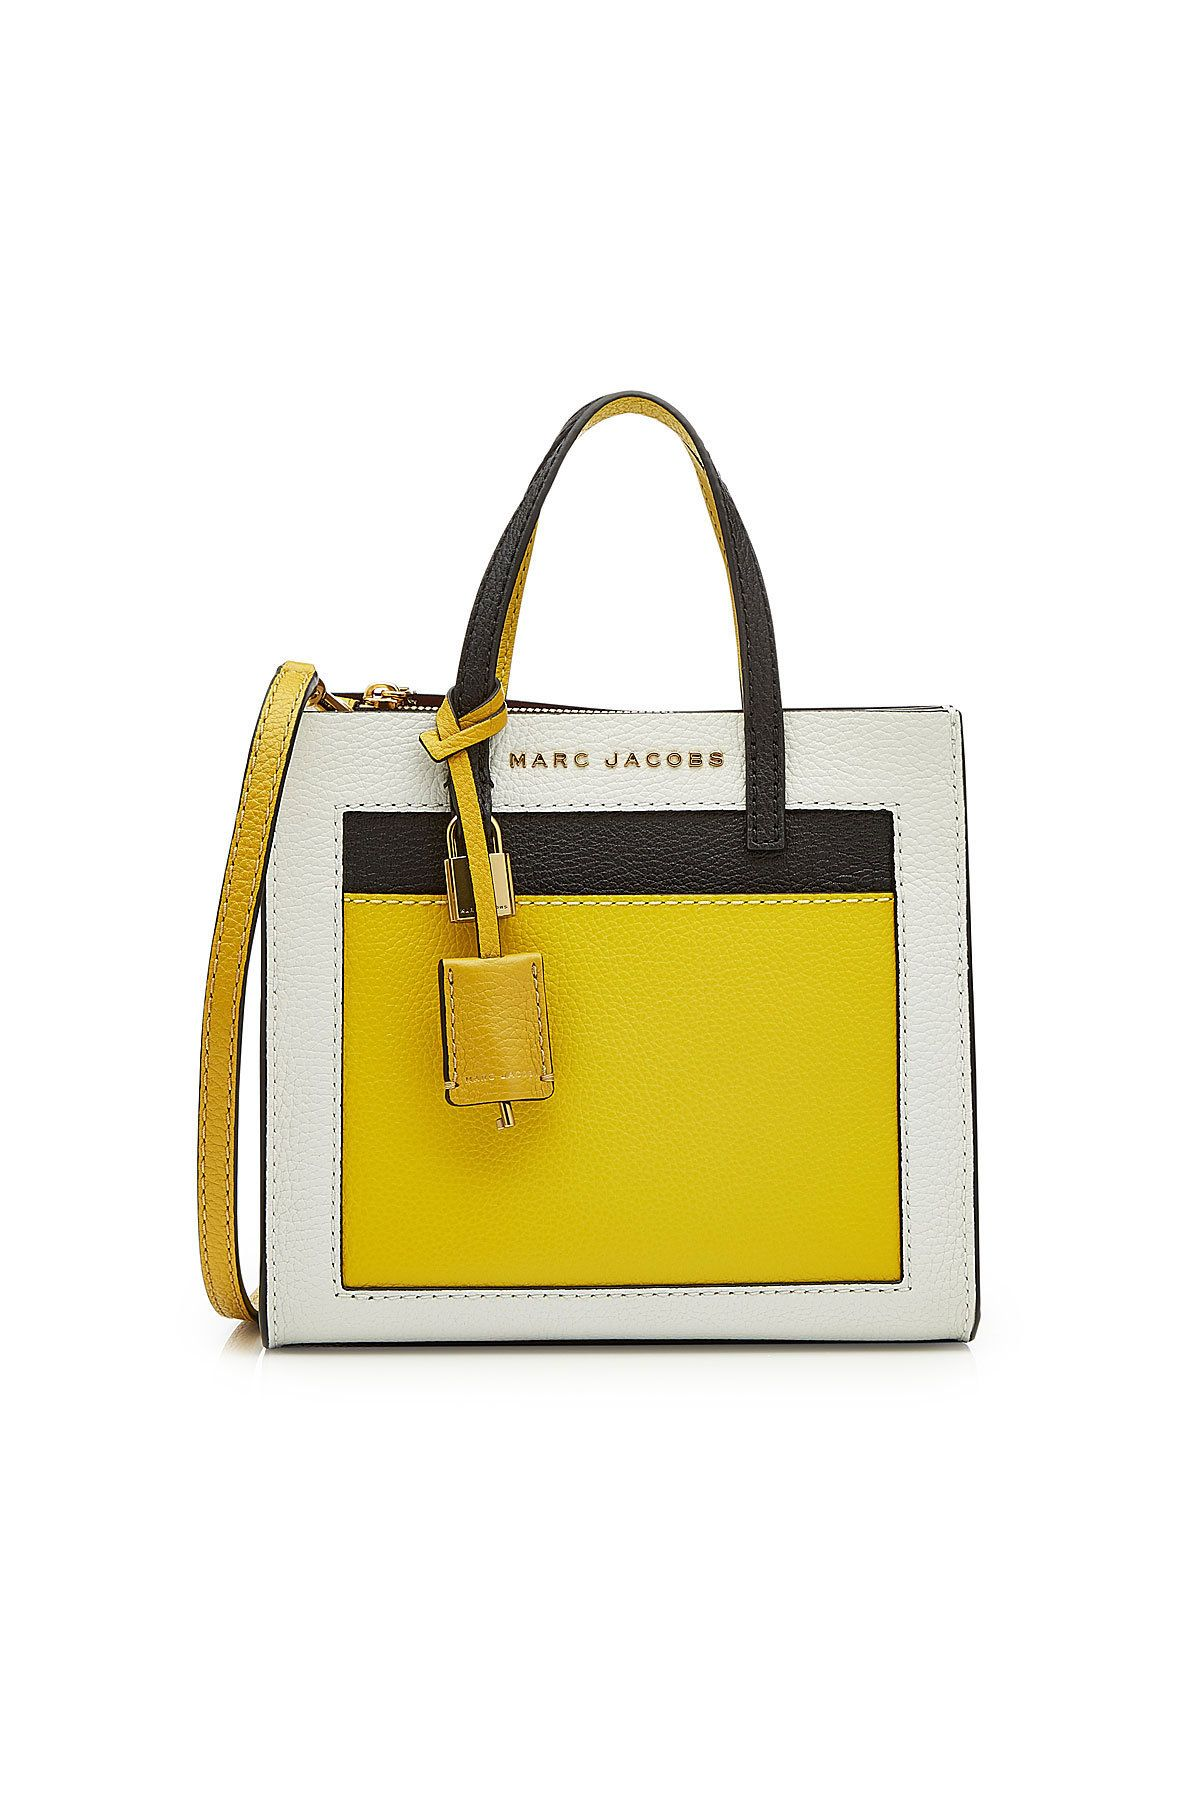 487a94e1262e MARC JACOBS MINI GRIND LEATHER TOTE.  marcjacobs  bags  leather  hand bags   tote